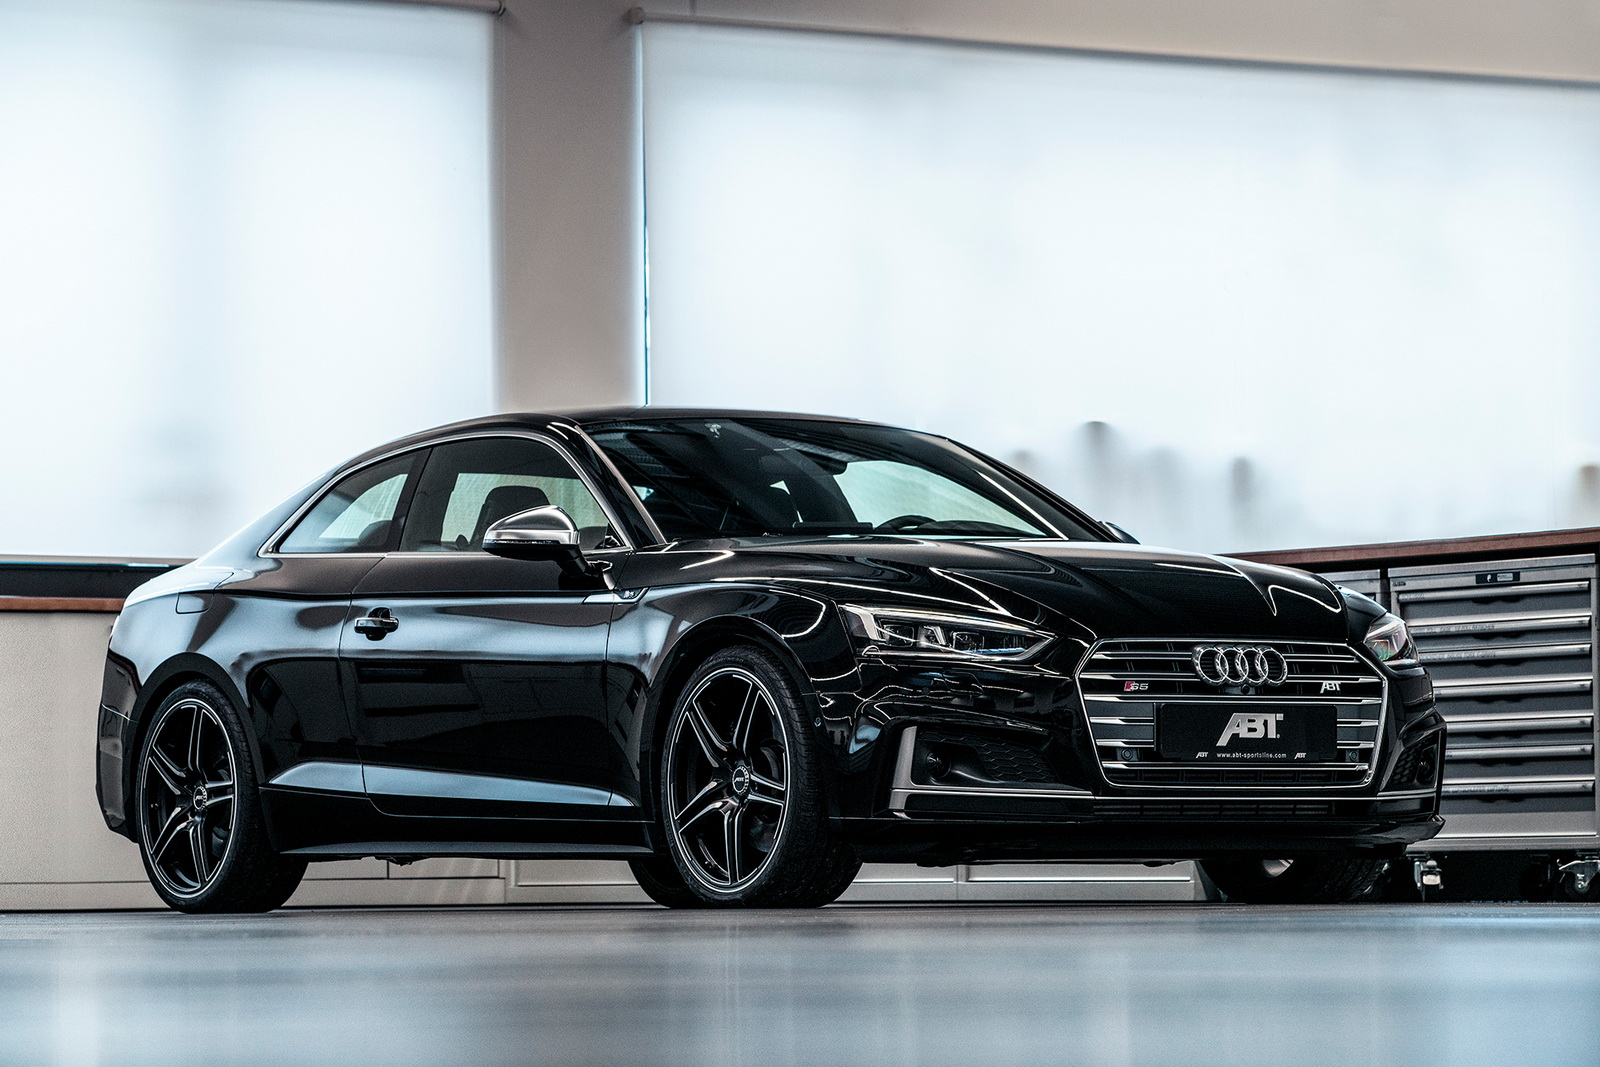 ABT S5 Coupe by ABT (2)